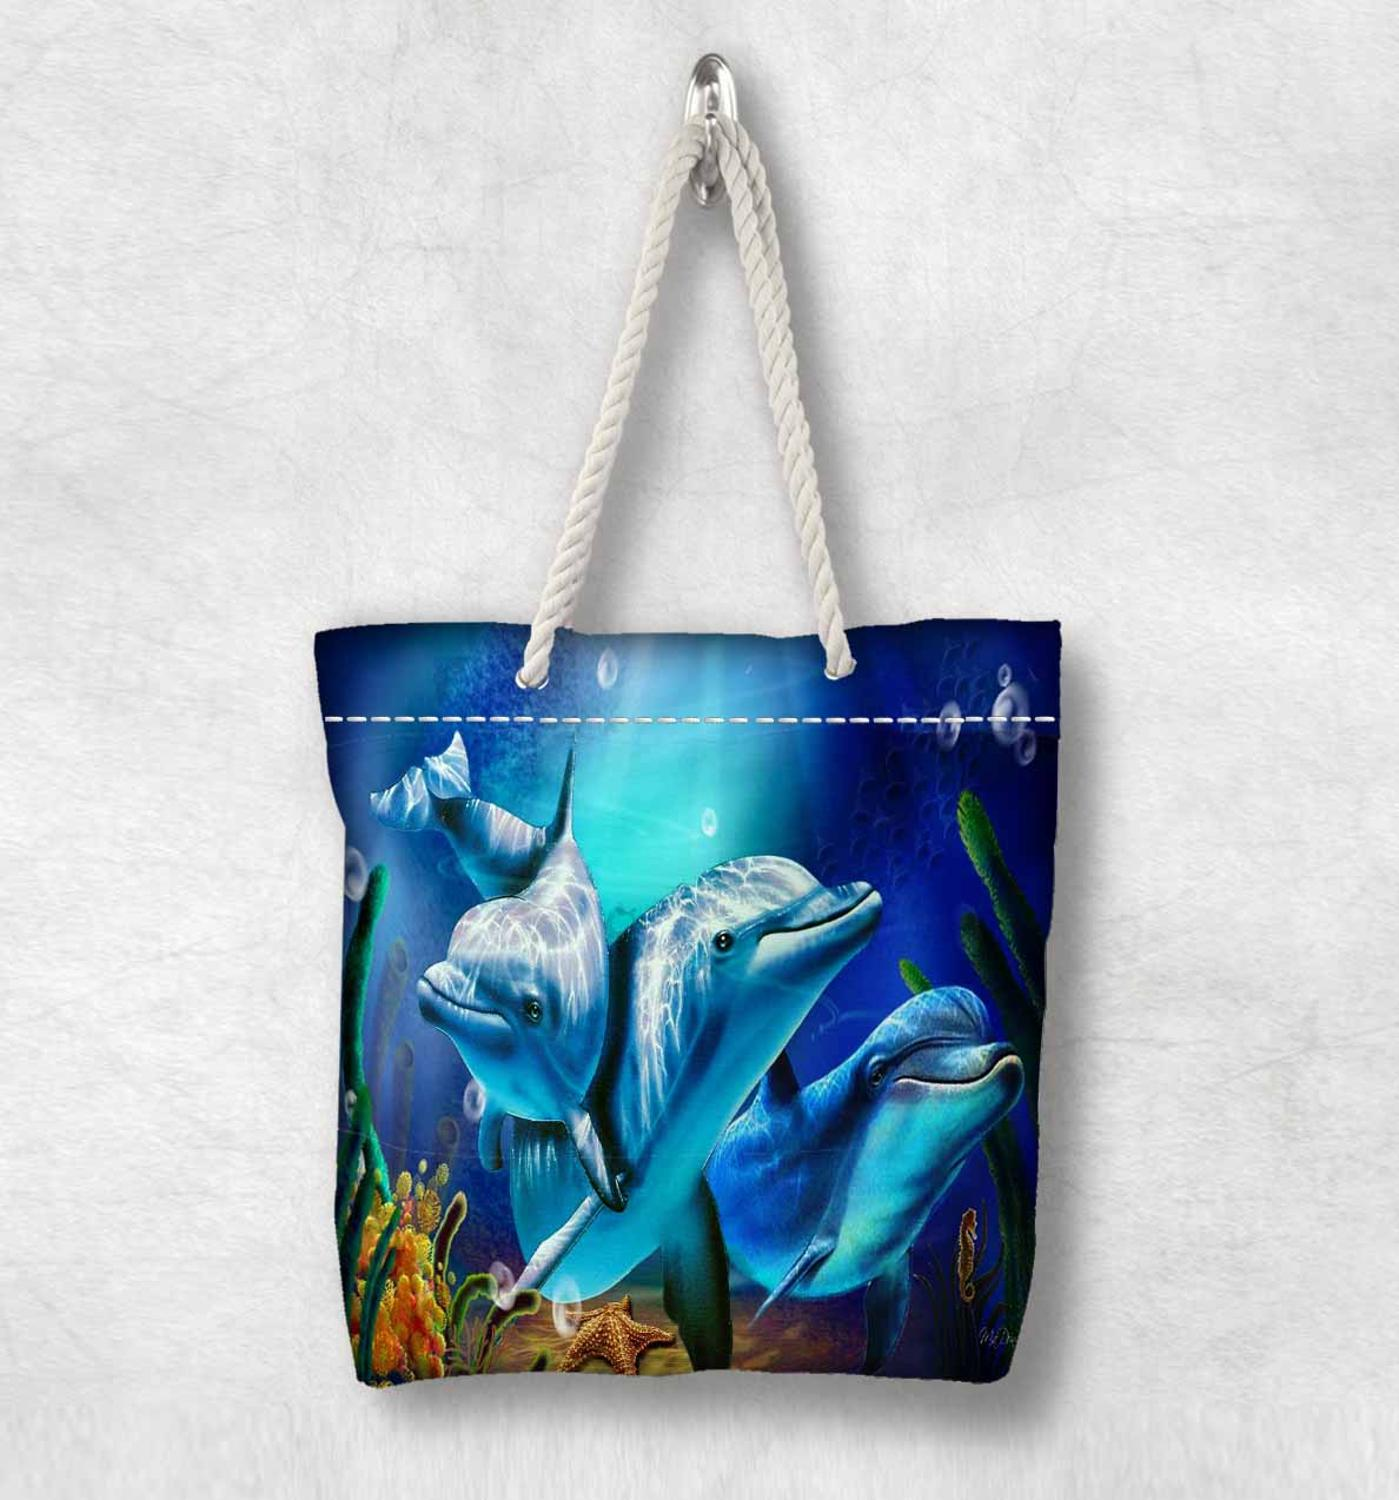 Else Blue Sea Swimming Dolphins Fish New Fashion White Rope Handle Canvas Bag Cotton Canvas Zippered Tote Bag Shoulder Bag